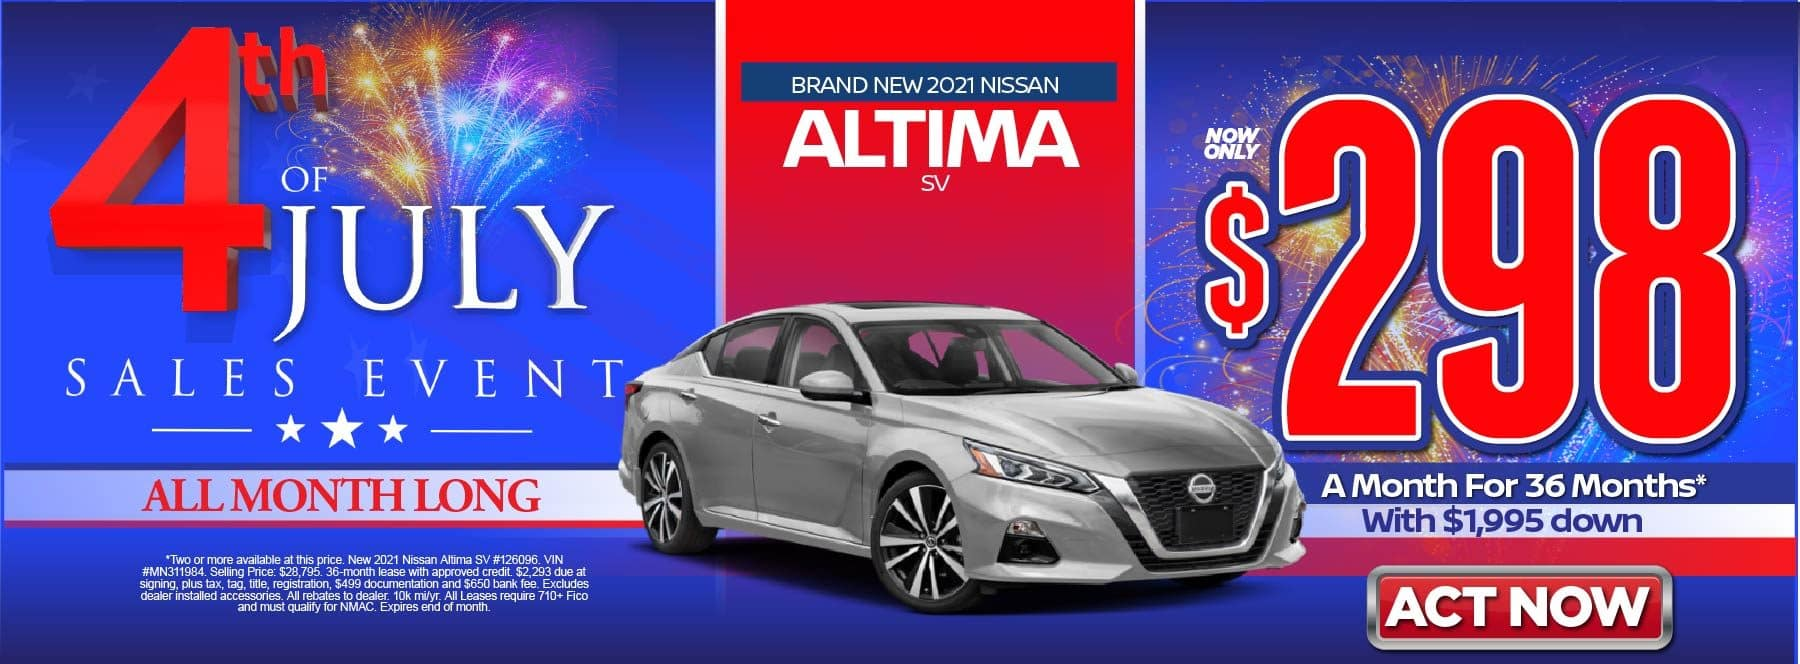 New 2021 Nissan Altima SV – Lease for $298/mo for 36 months with $1,995 Down* Act now